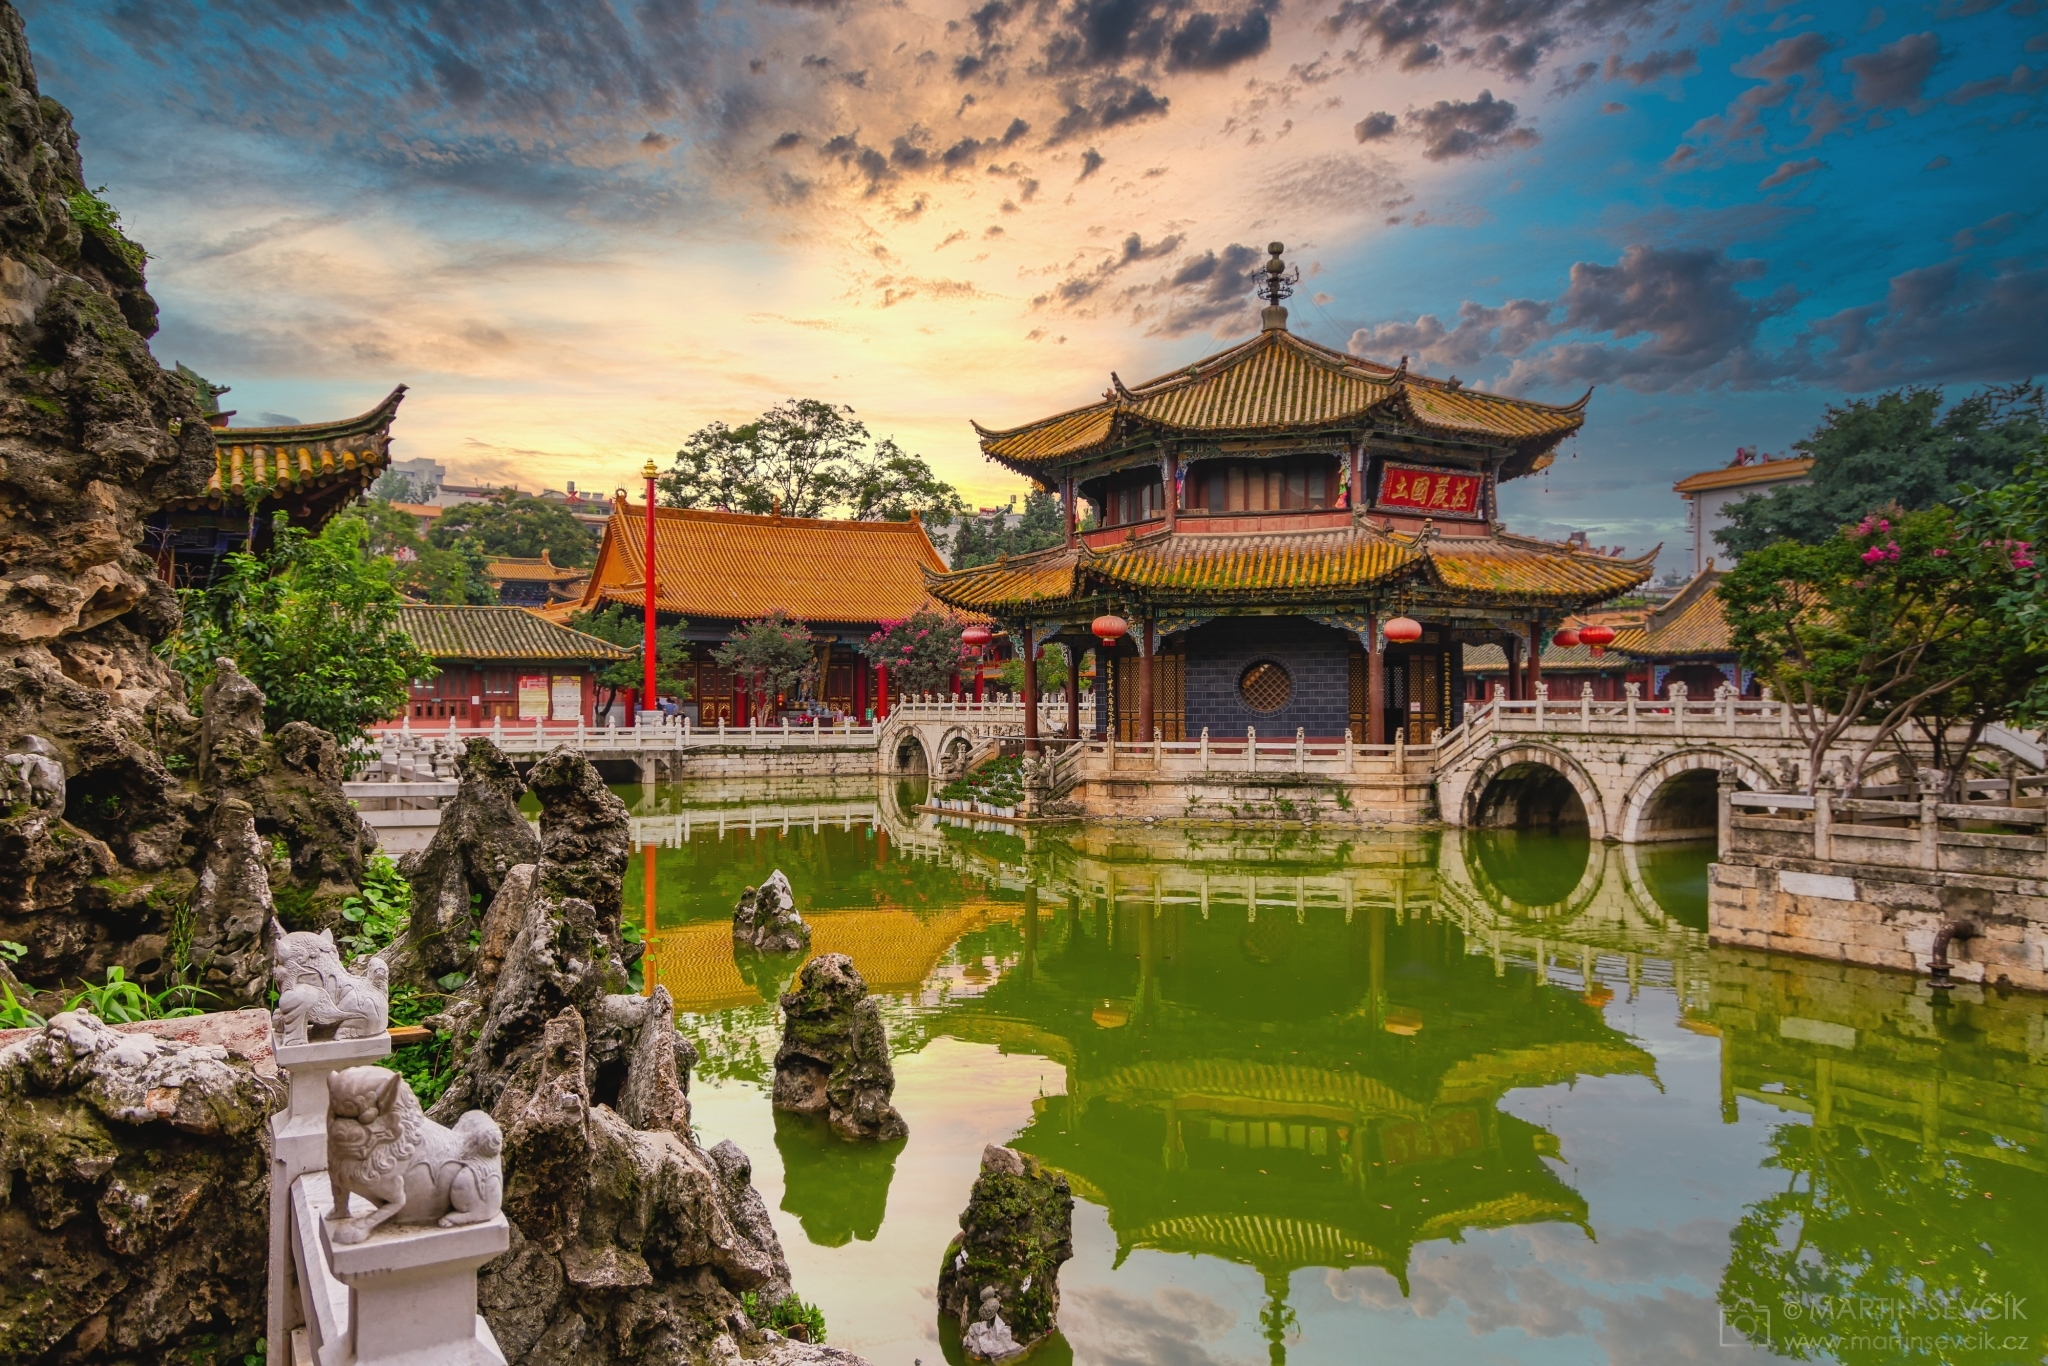 Yuantong Ancient Buddhist Temple in the Gardens of Eternal Spring at Dusk - Kunming, China